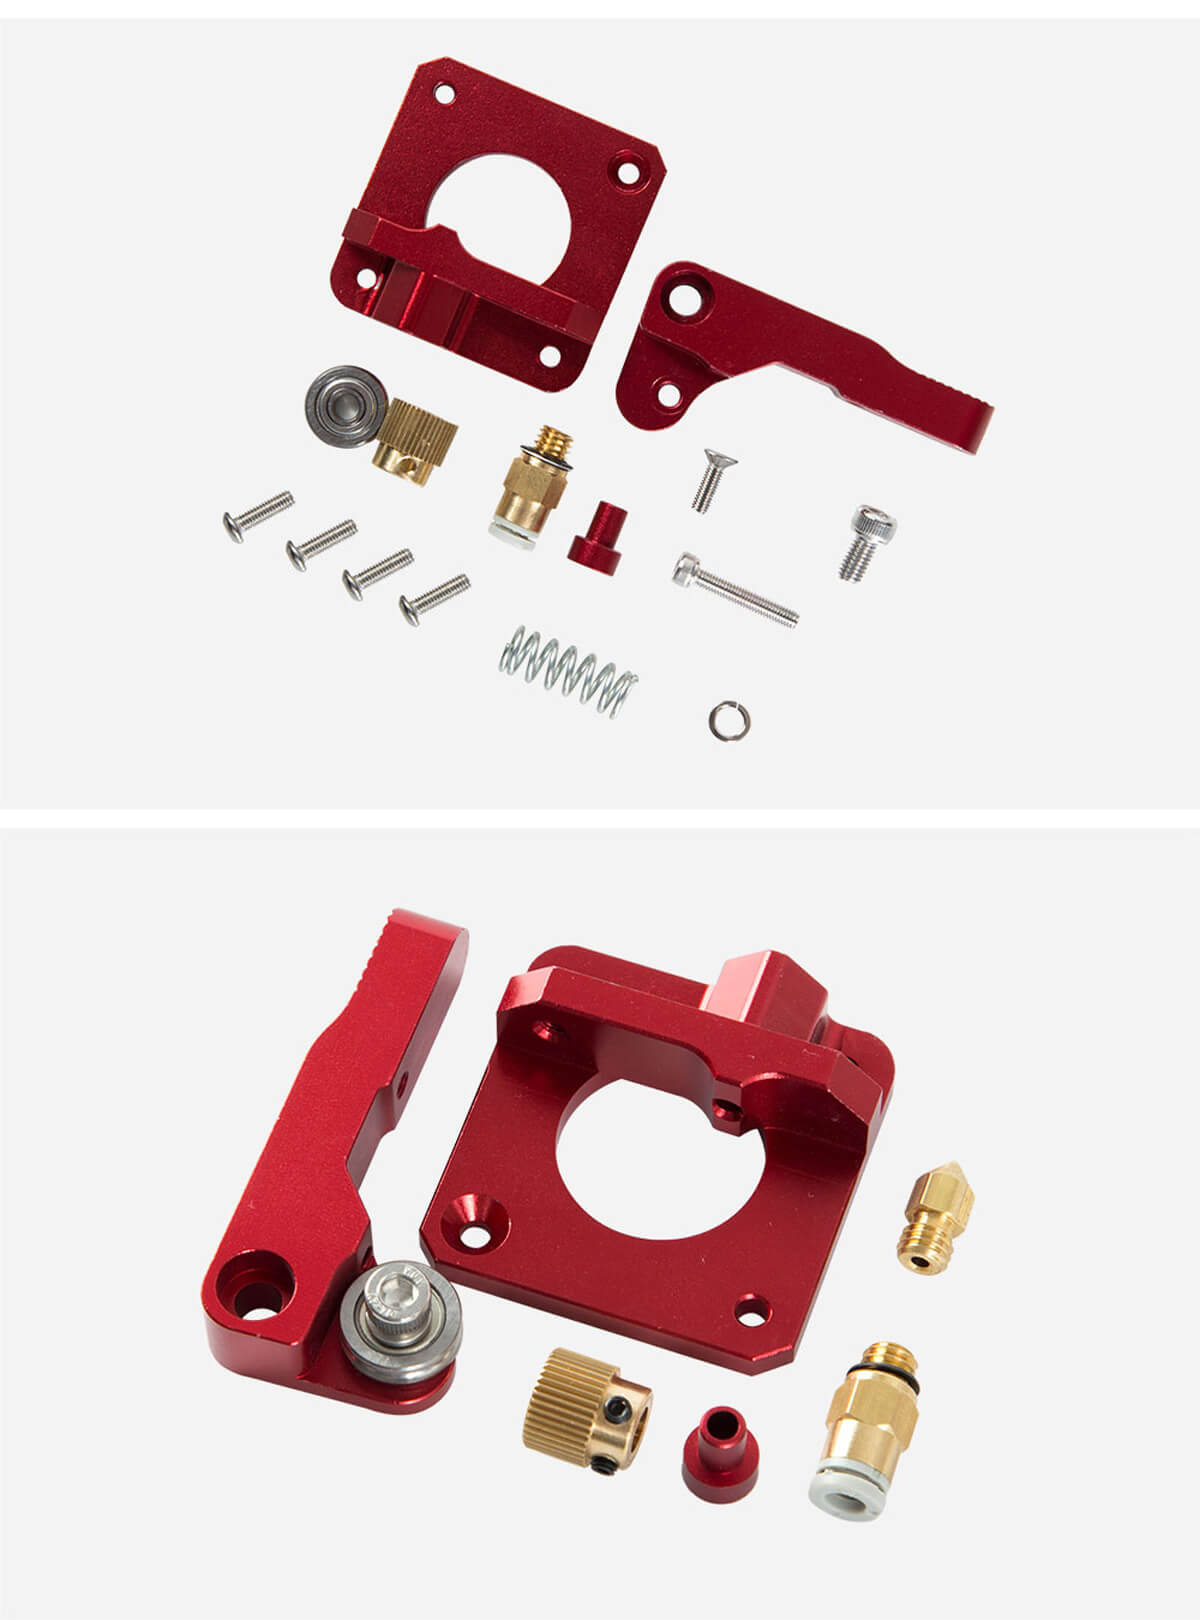 creality-3d-printer-Red-Metal-Extrusion-Mechanism-Kit-12